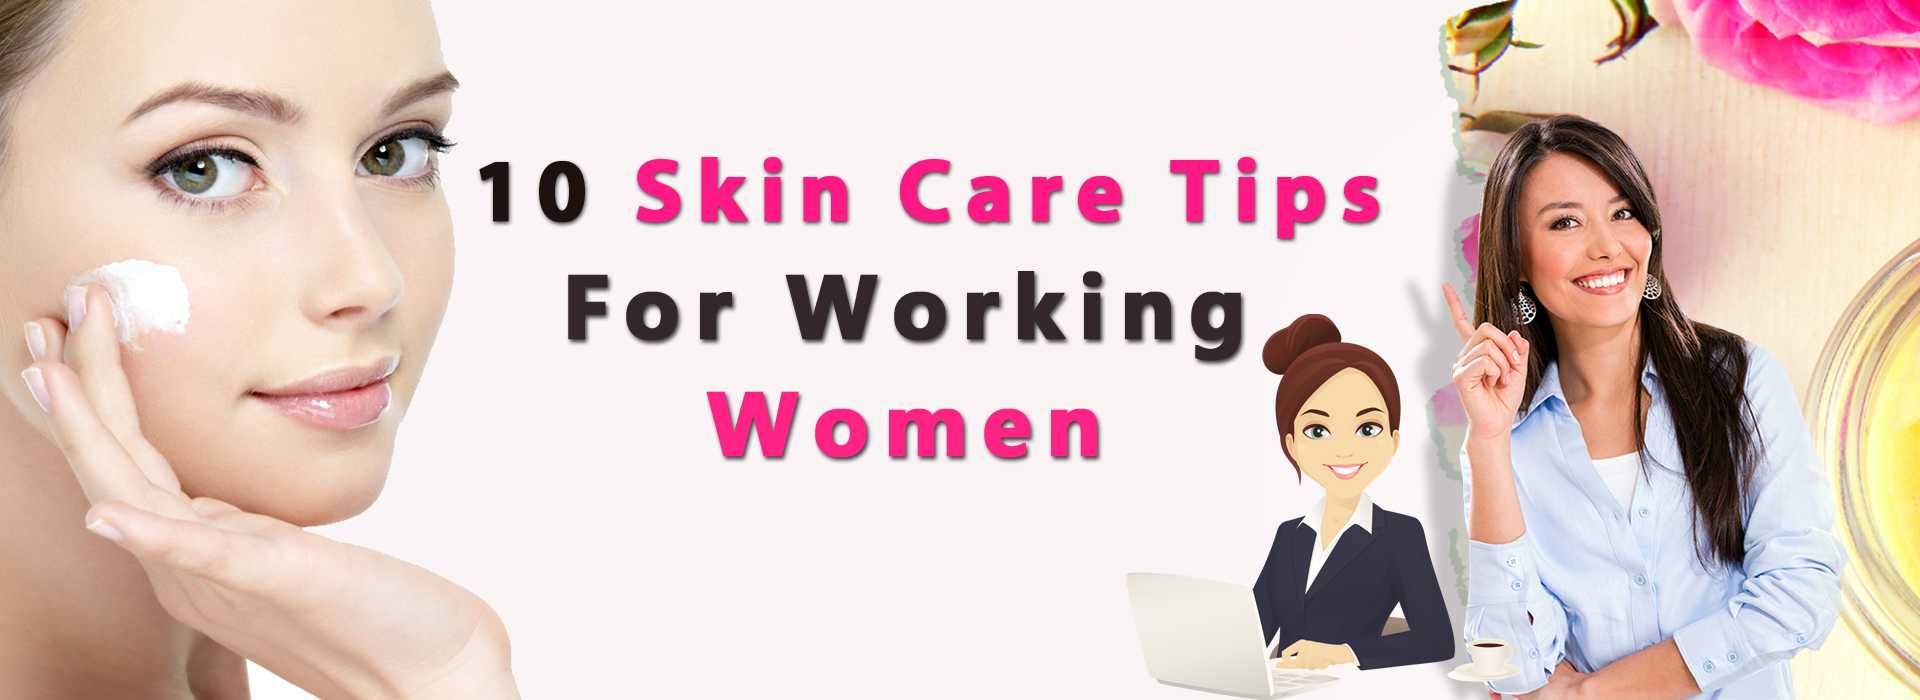 Skin Care Tips for working women